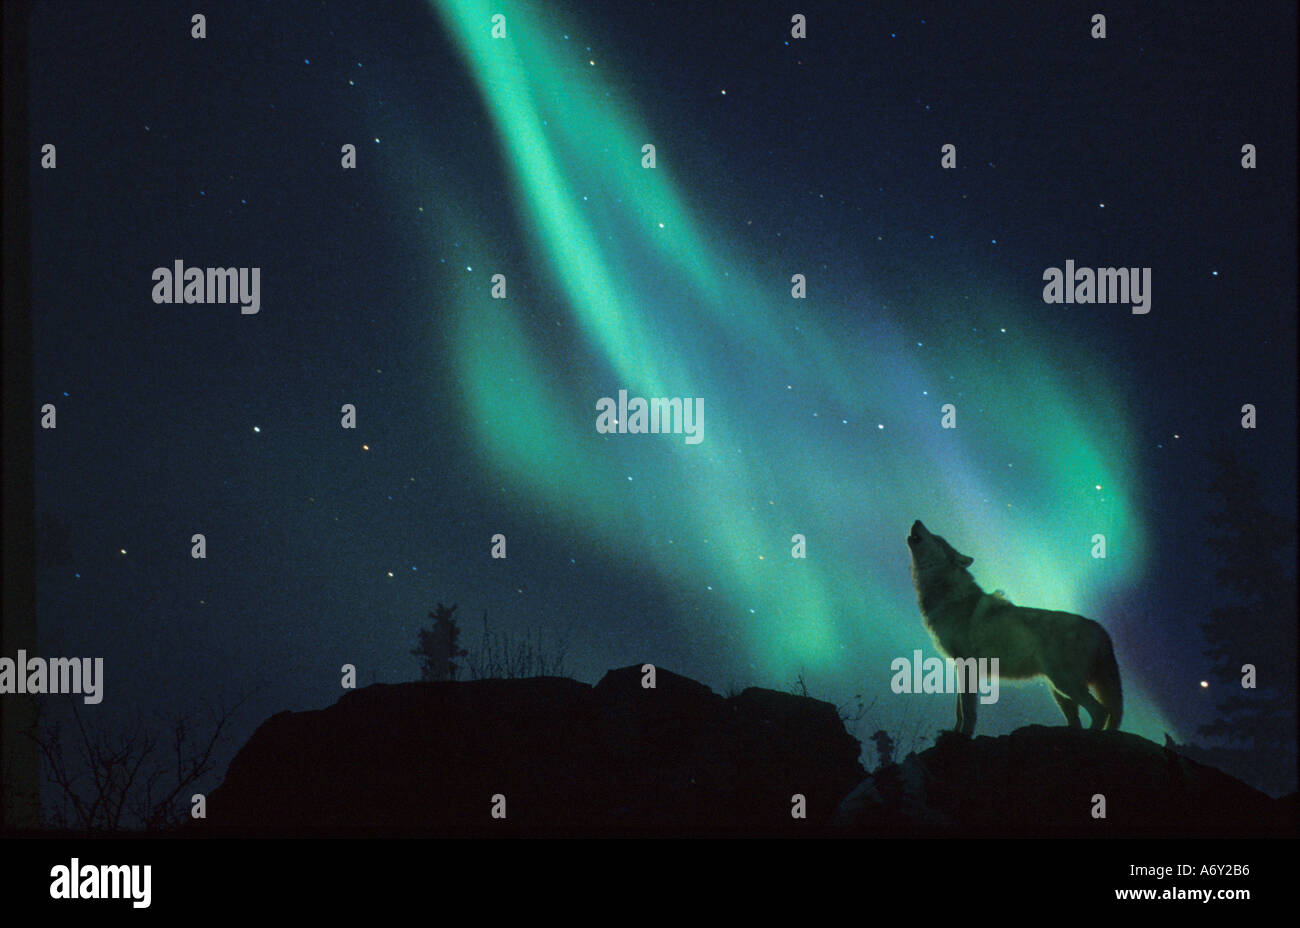 AK Wolf Howling on Ridge Northern Lights Composite Night Blue Green Scenic Landscape - Stock Image